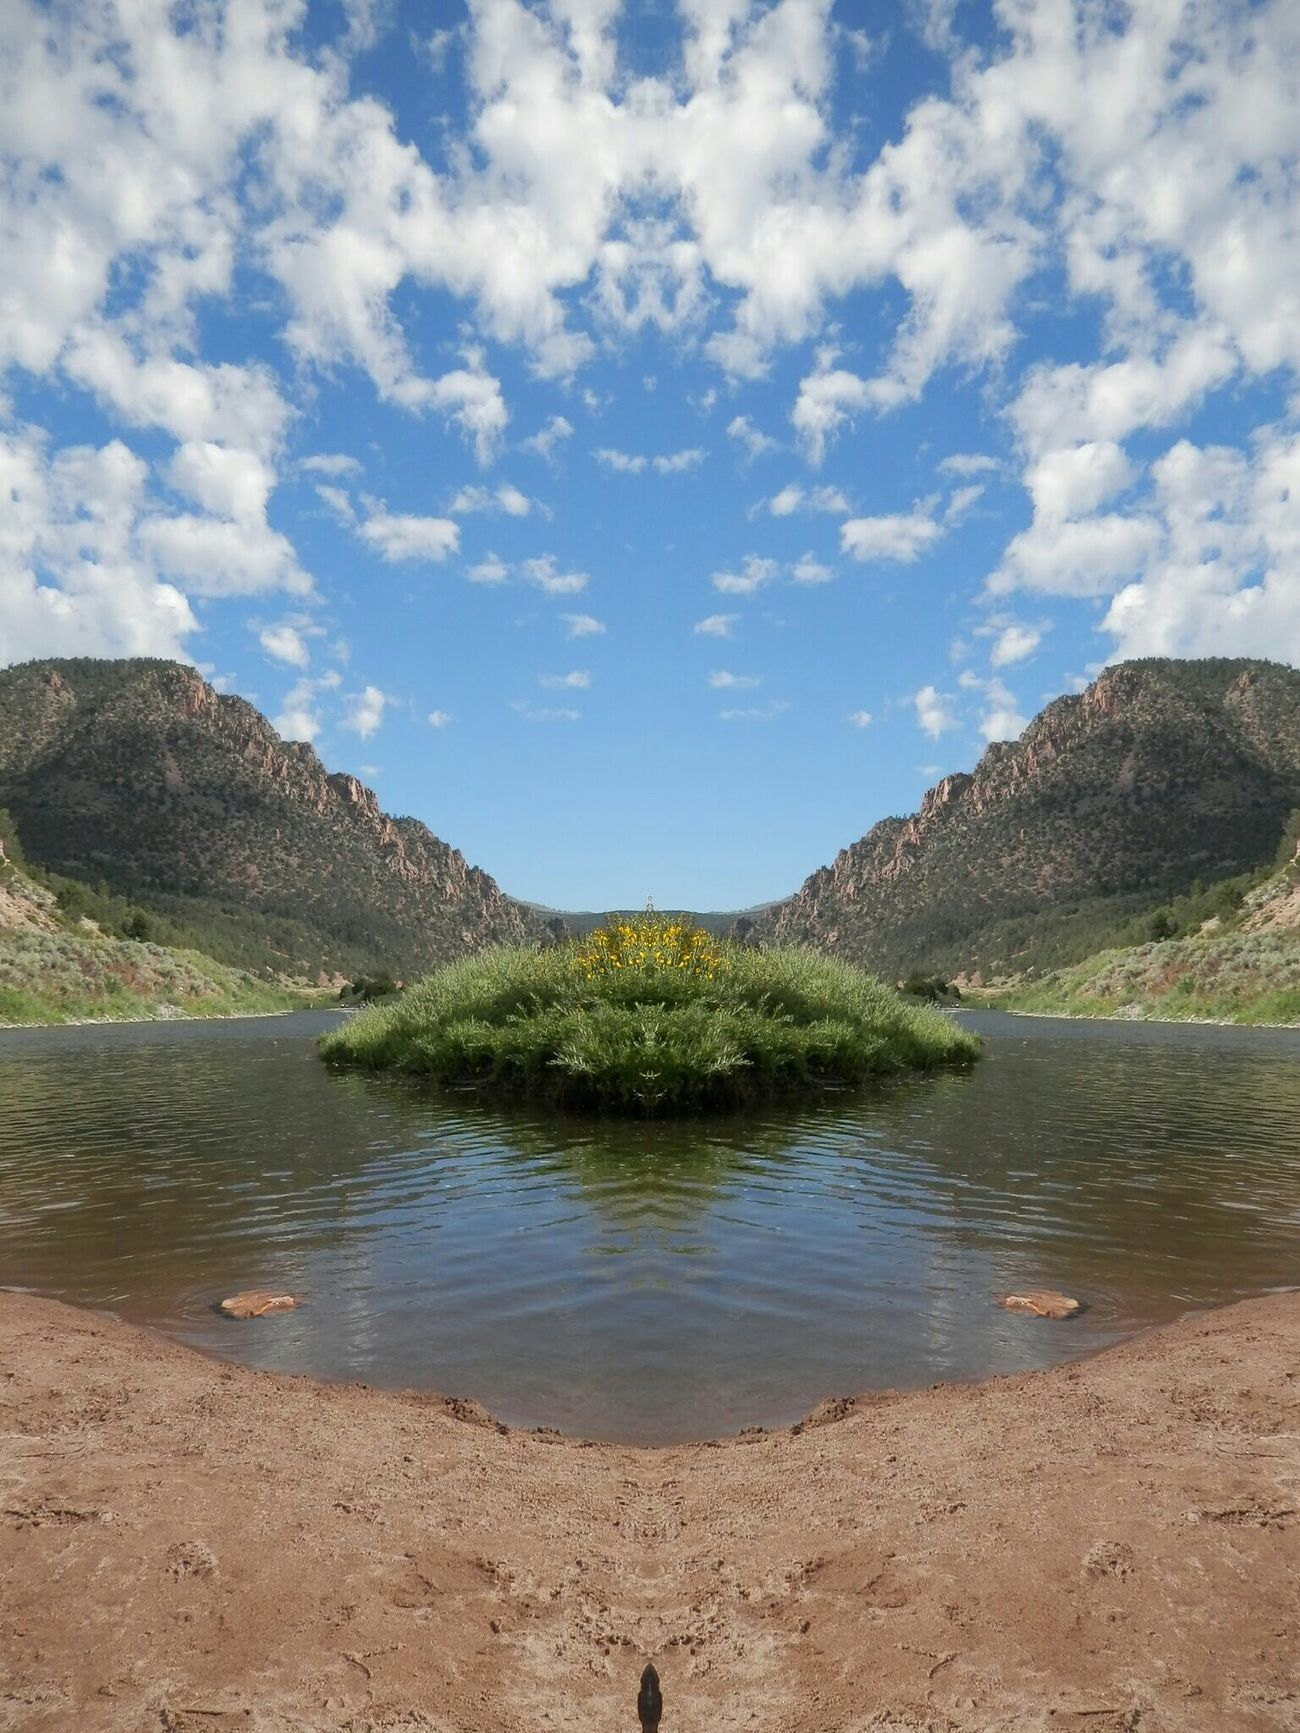 Mirror Effect Mirroring Playing Around!  Cloudporn Soul Searchin What I Value No People Riverscape Mountains Sumer Vacation Upper Colorado Riverlife River Trip Good Life River View Waterlove Colorado Vacation Outside